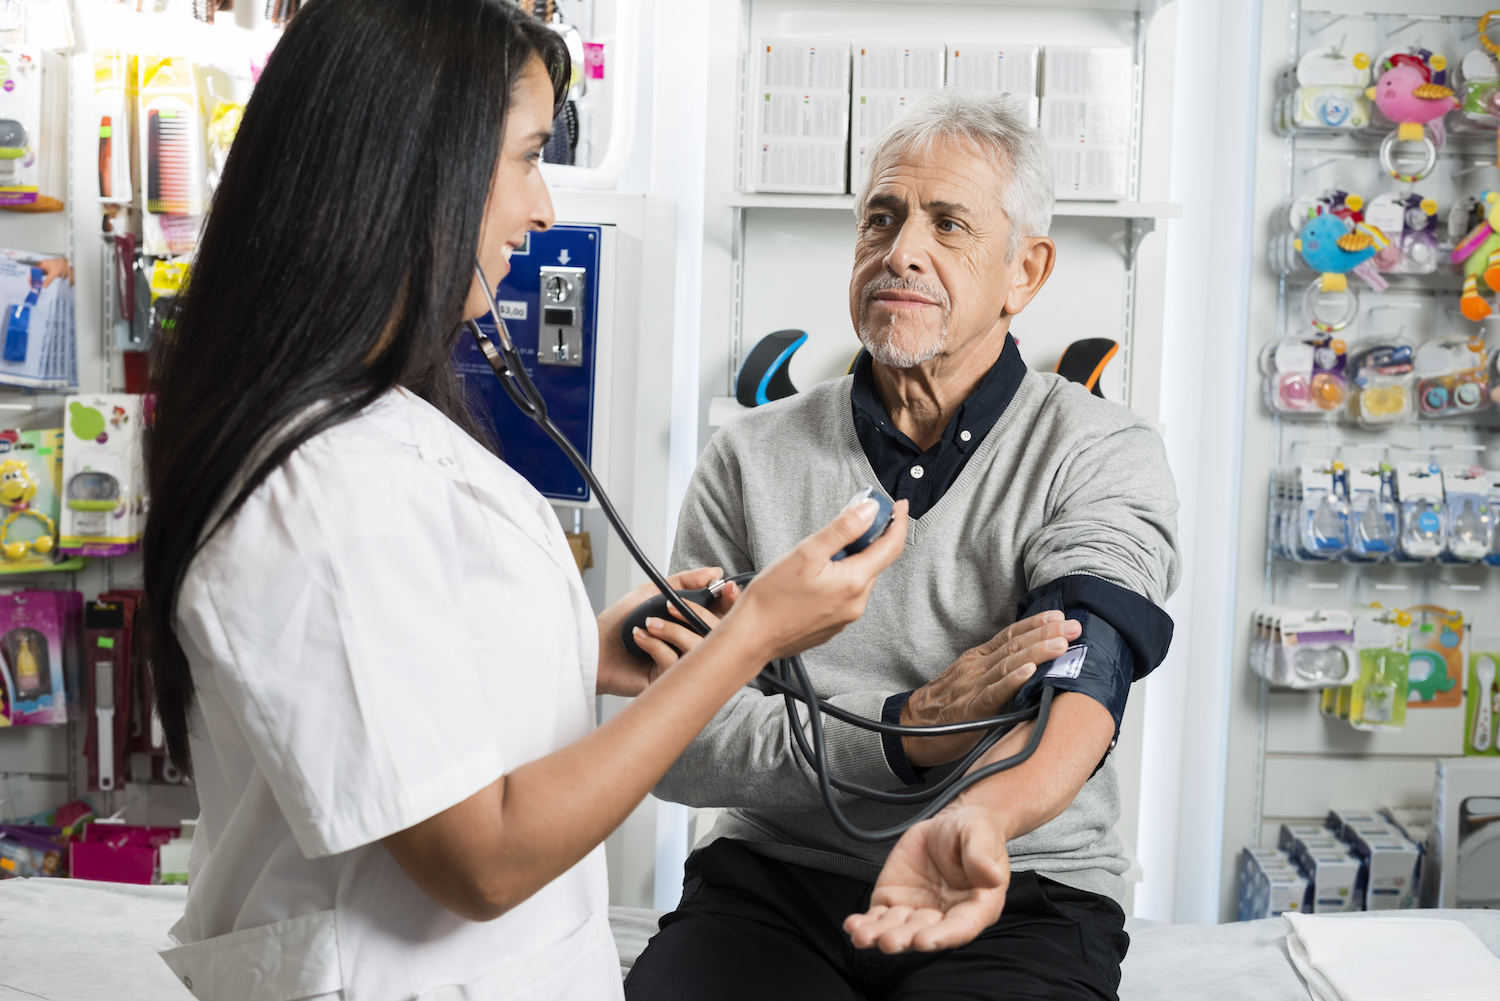 Are you struggling to monitor your blood pressure or just simply want it checked without making a trip to the doctors? Stop by our stores to have one of our pharmacists check it for you!